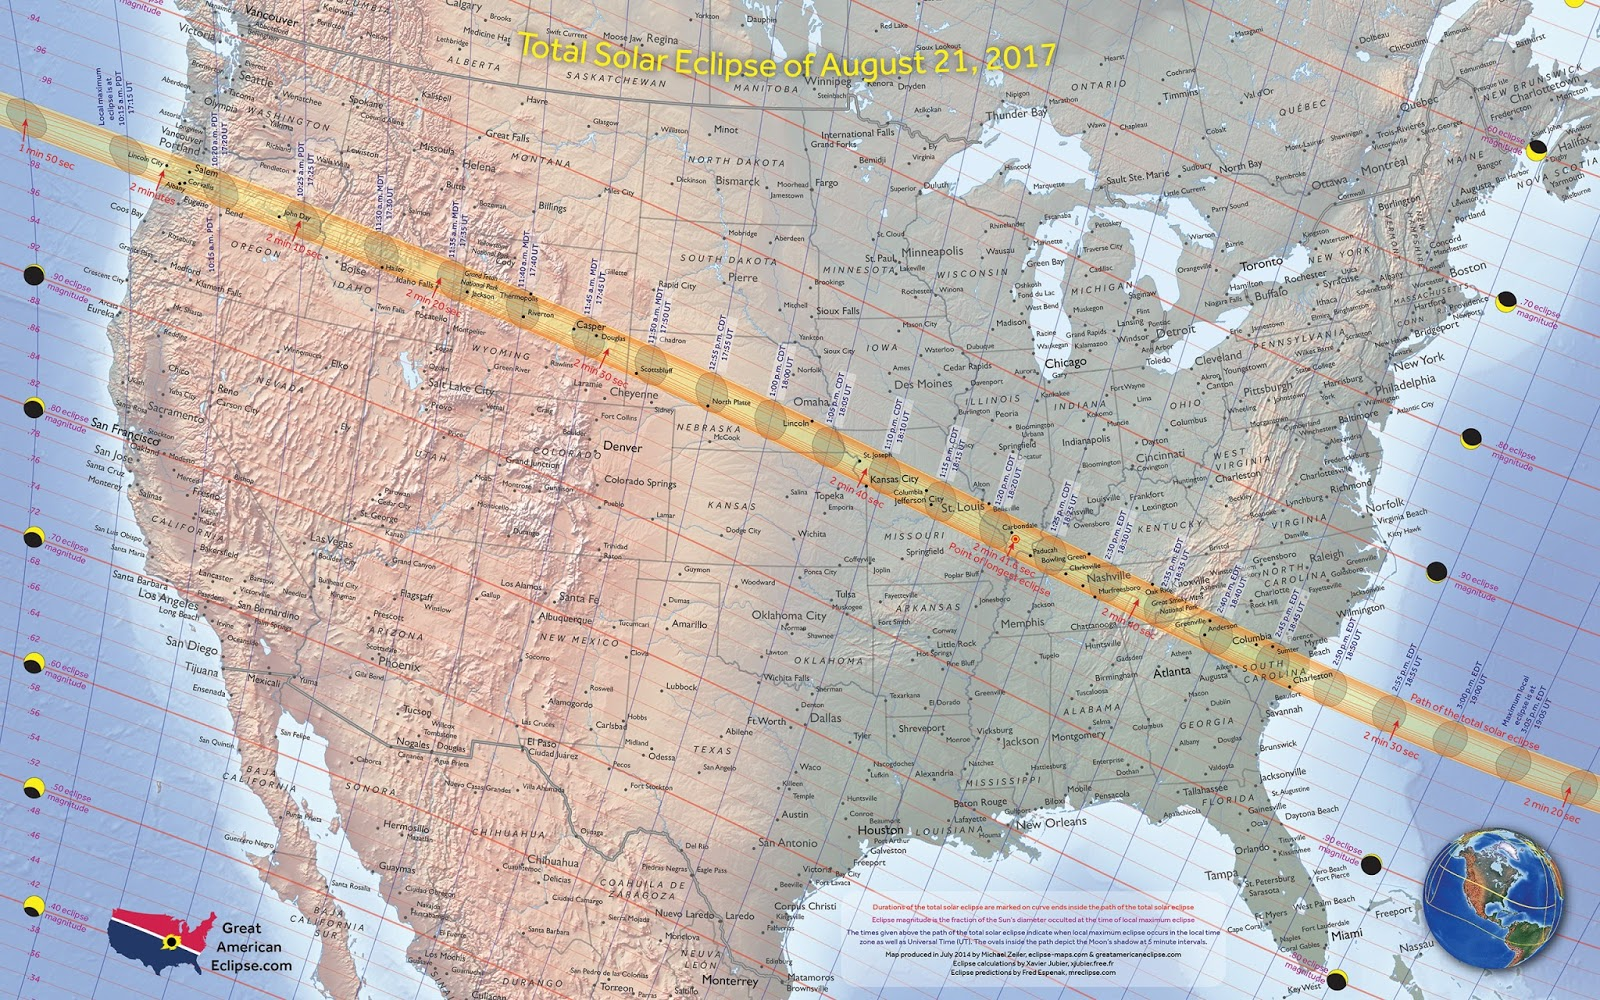 Map of the path of the total solar eclipse over the United States (August 21st, 2017) - Vivid Maps